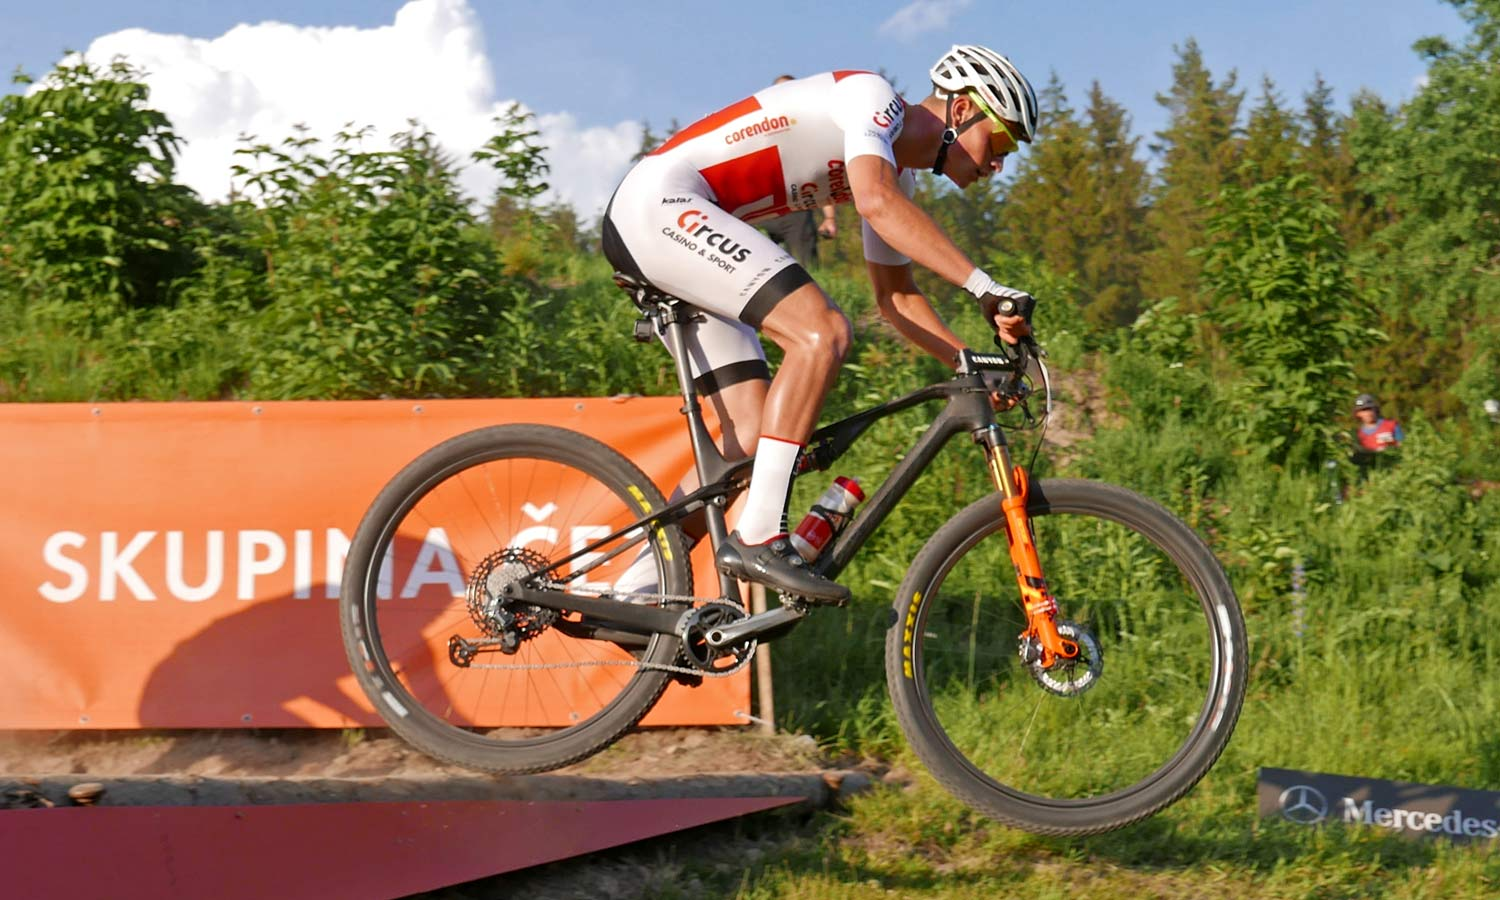 xtr m9100 for mathieu van der poel